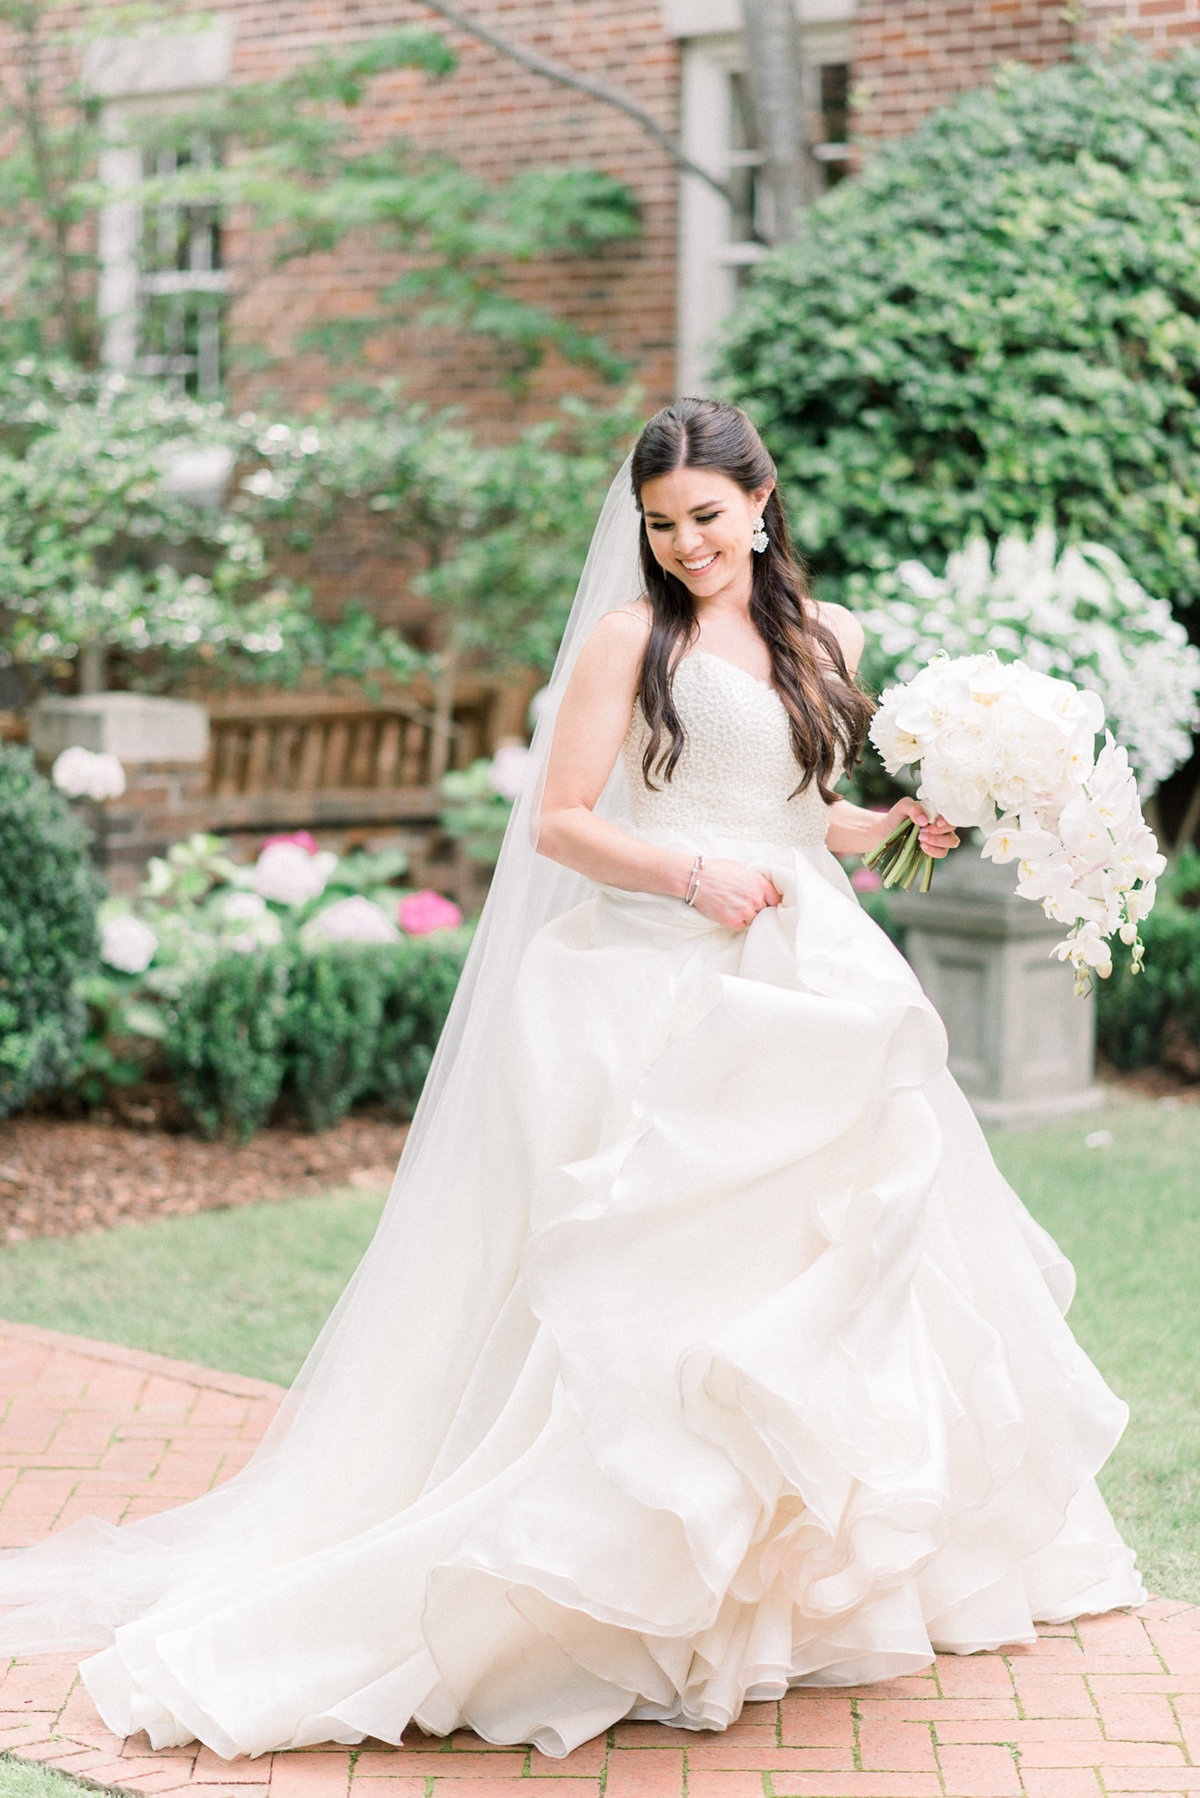 Canterbury Methodist Birmingham Museum of Art - Alabama Wedding Photographer24